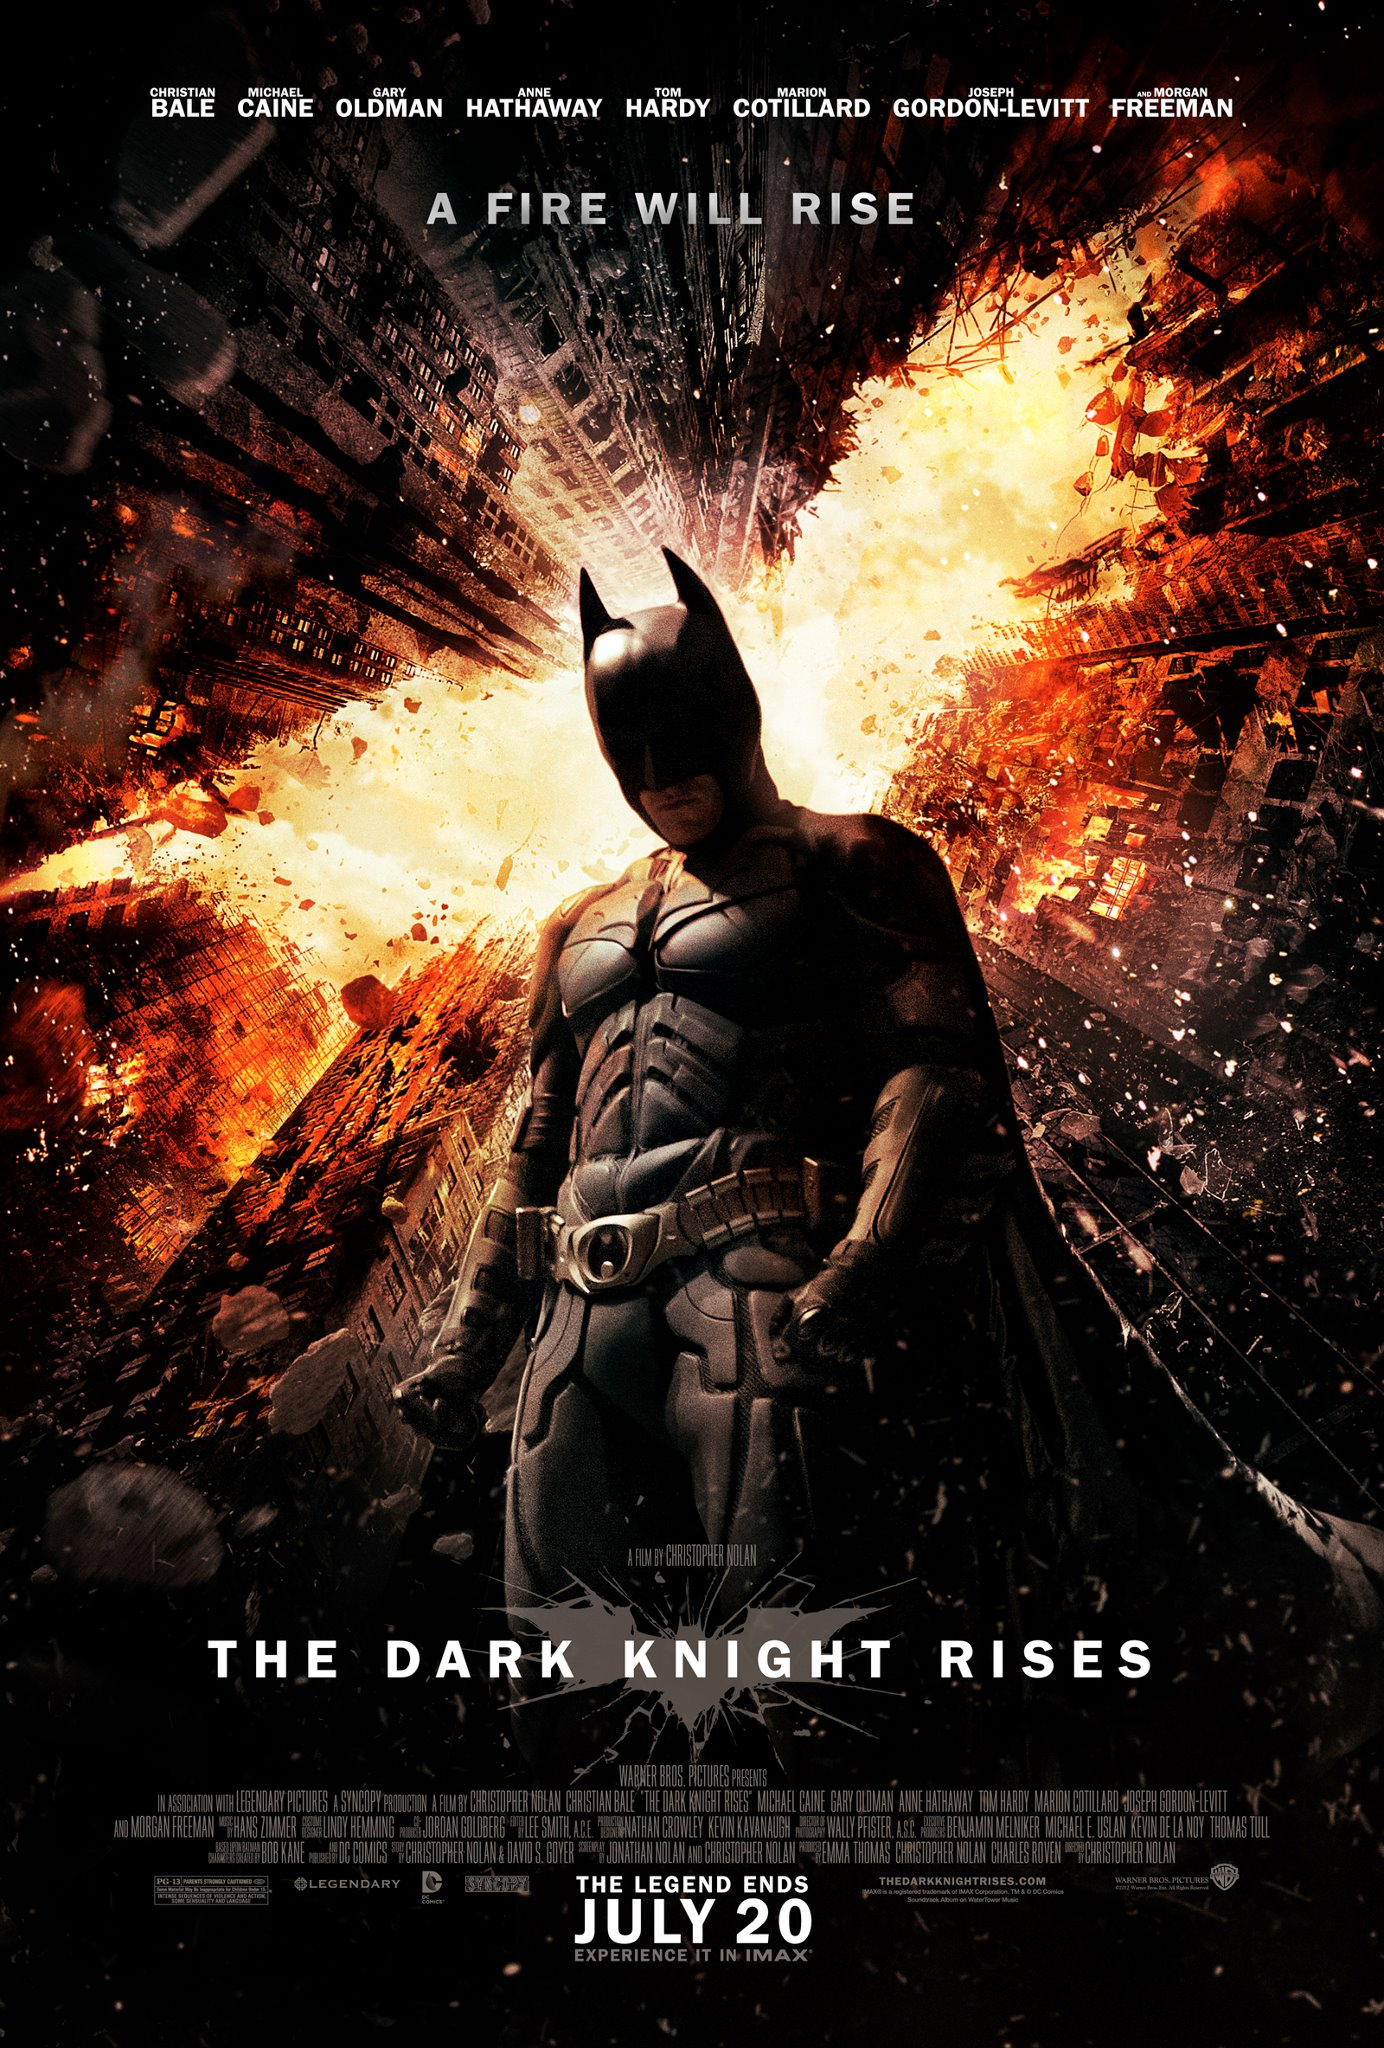 follow up to dark knight rises